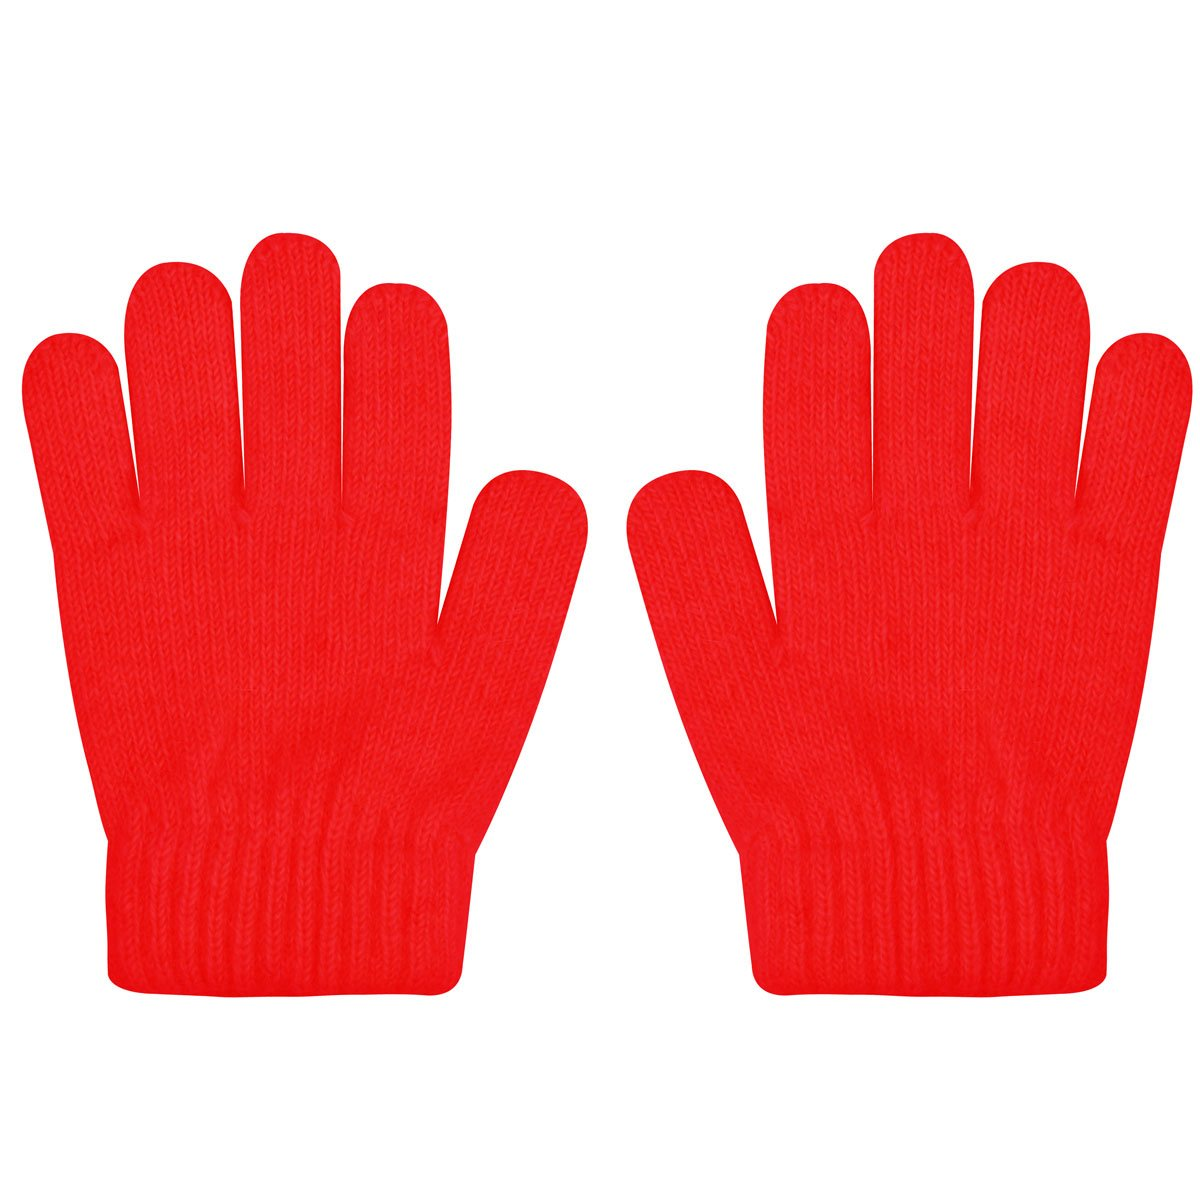 Kids Gloves Magic Knit Containing Cashmere Angora Gloves Solid Colors for Girls And Boys XJD45445563